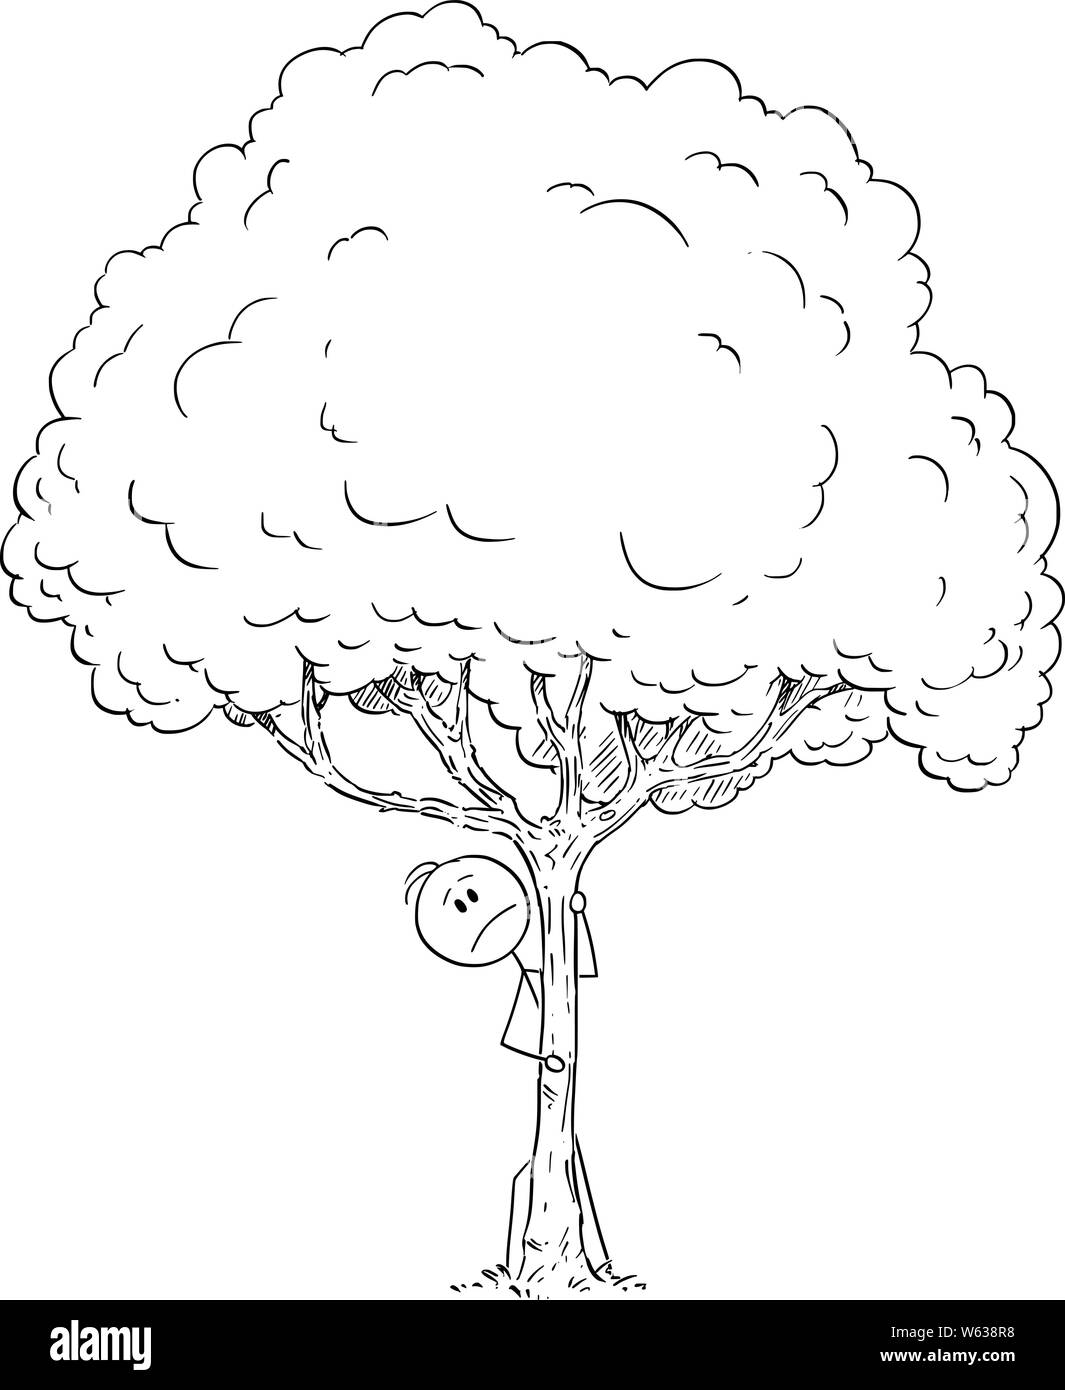 Vector cartoon stick figure drawing conceptual illustration of fearful or worried or afraid or curious man hiding behind tree. Stock Vector